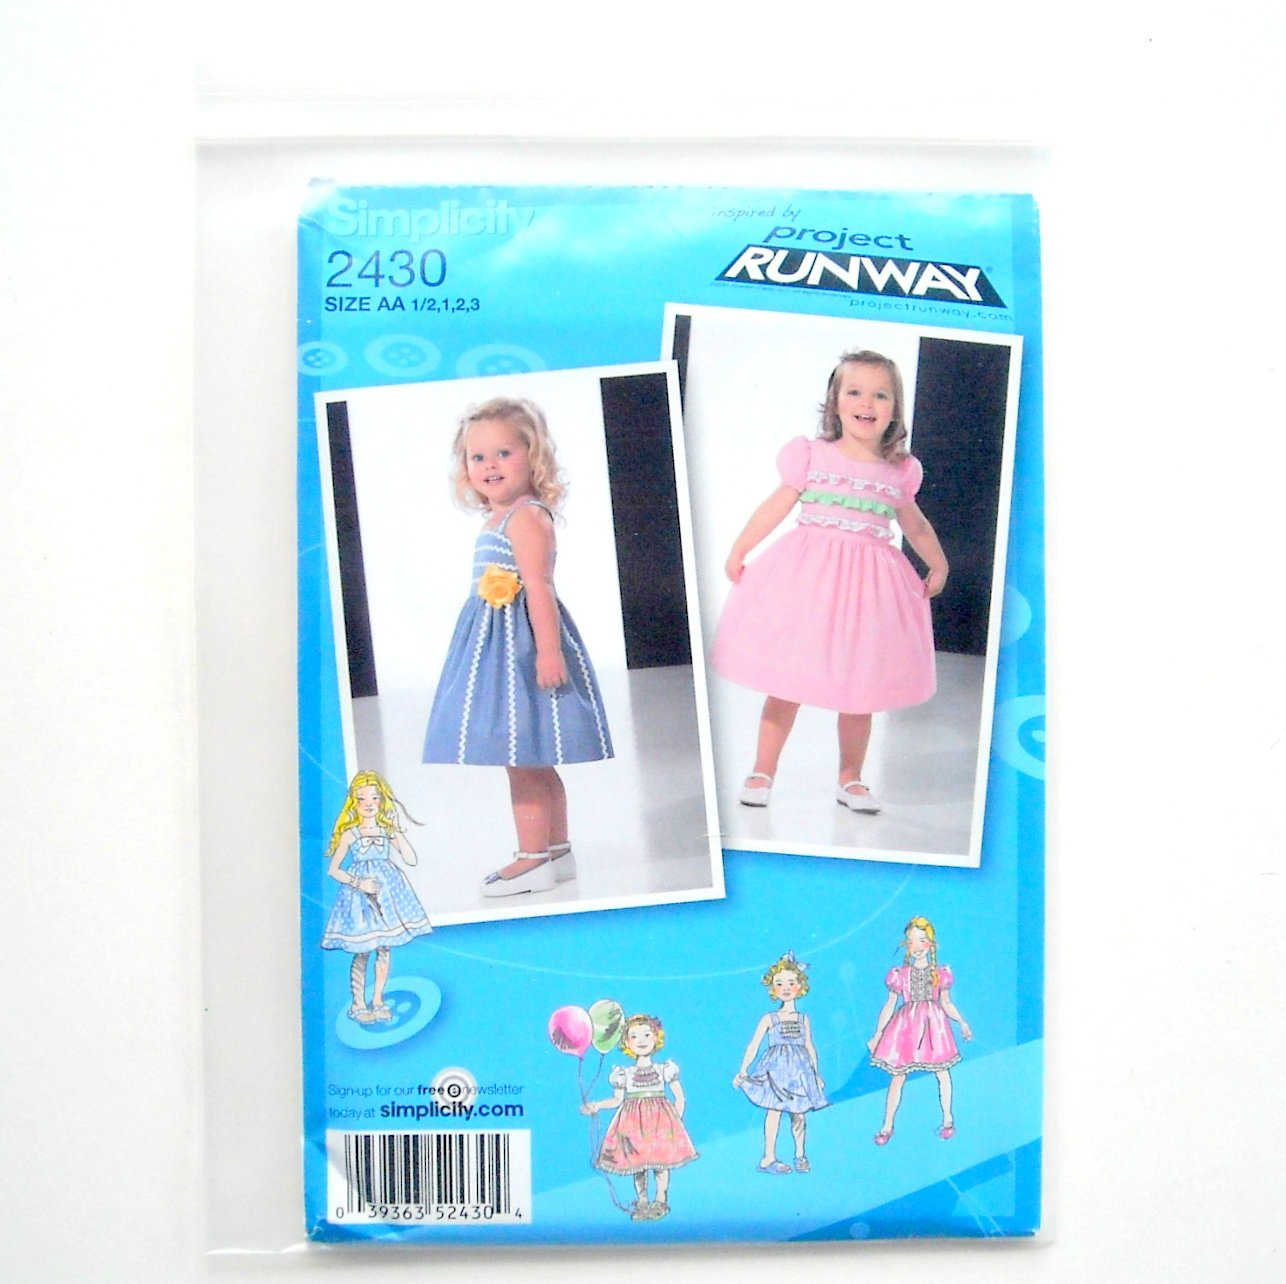 Toddlers Childs Girls Dresses 05 - 3 Project Runway Simplicity Sewing Pattern 2430